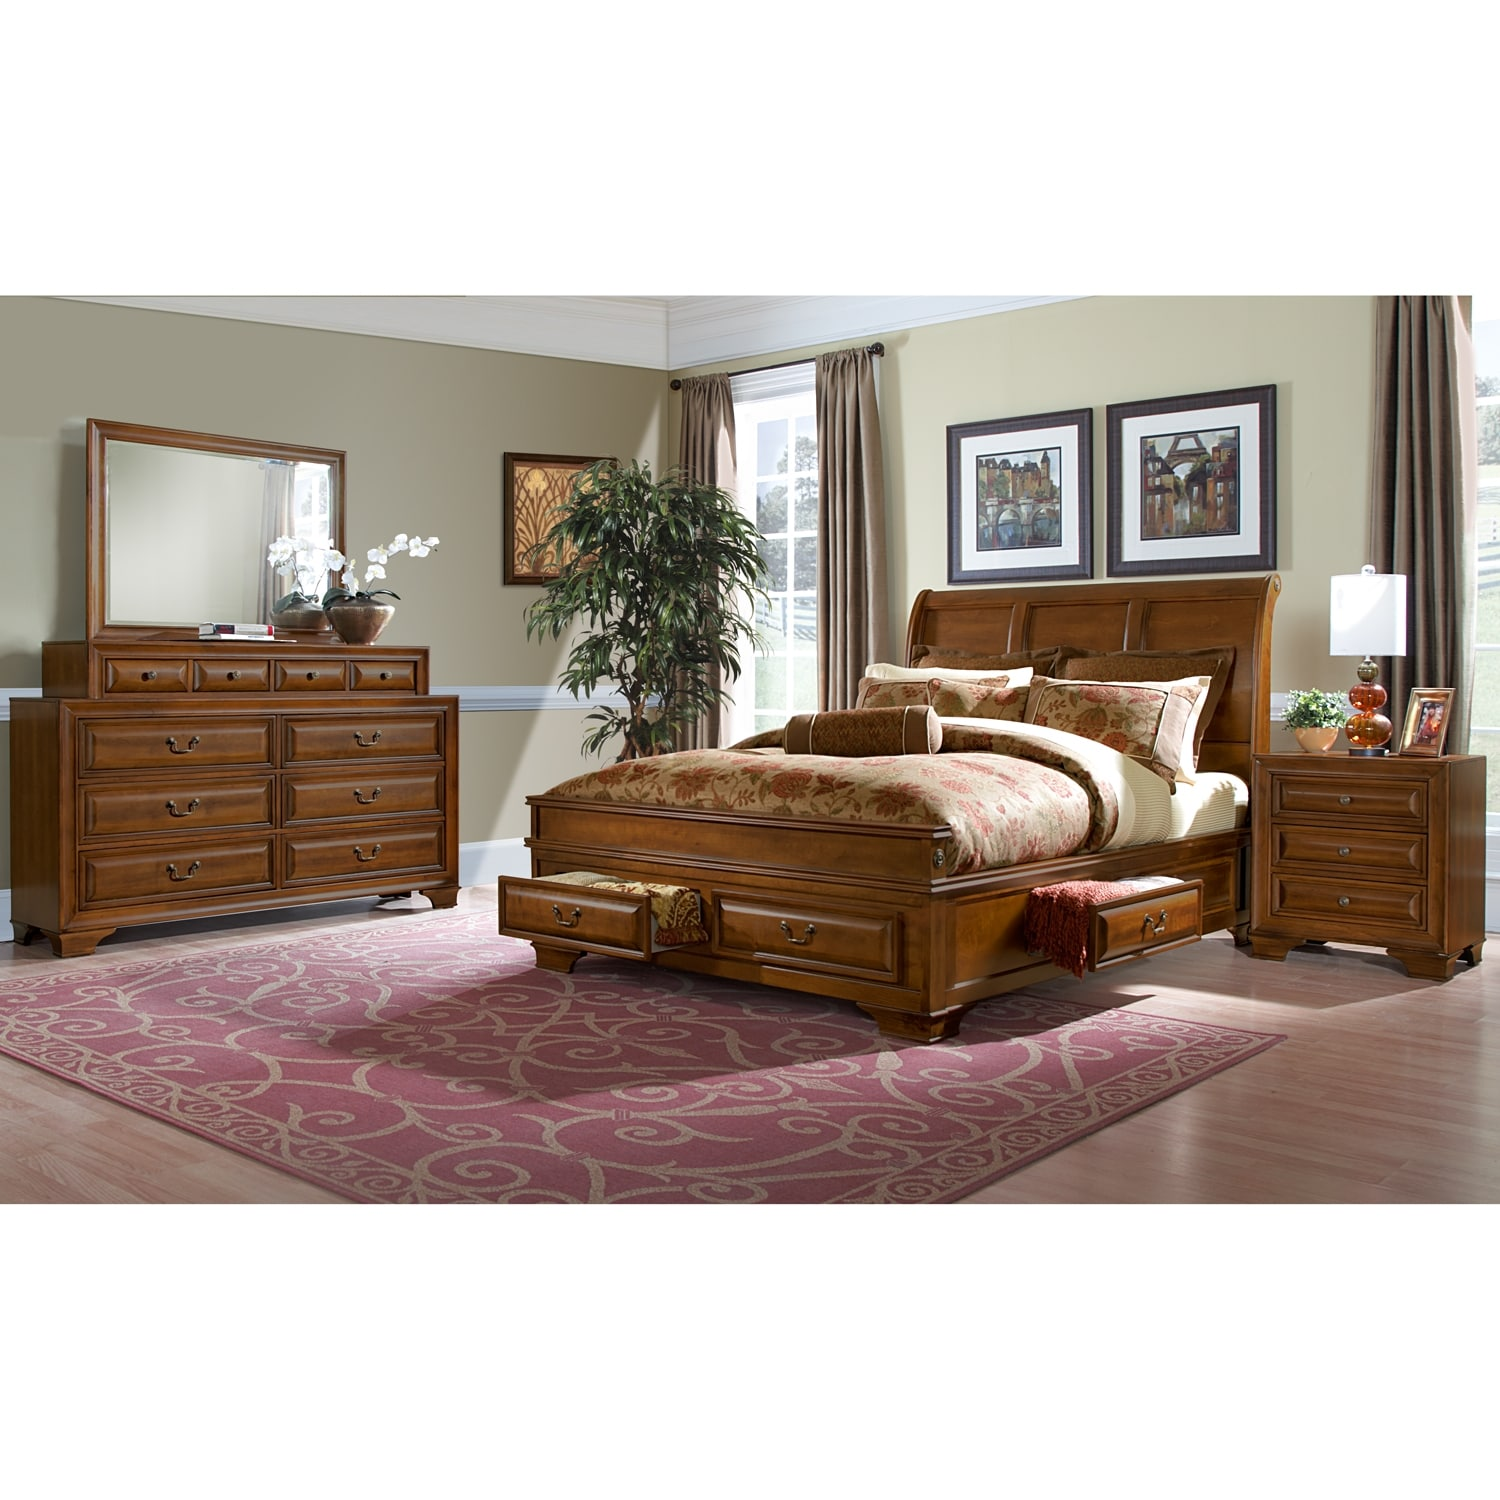 Sanibelle 6 pc queen storage bedroom american signature for Signature furniture